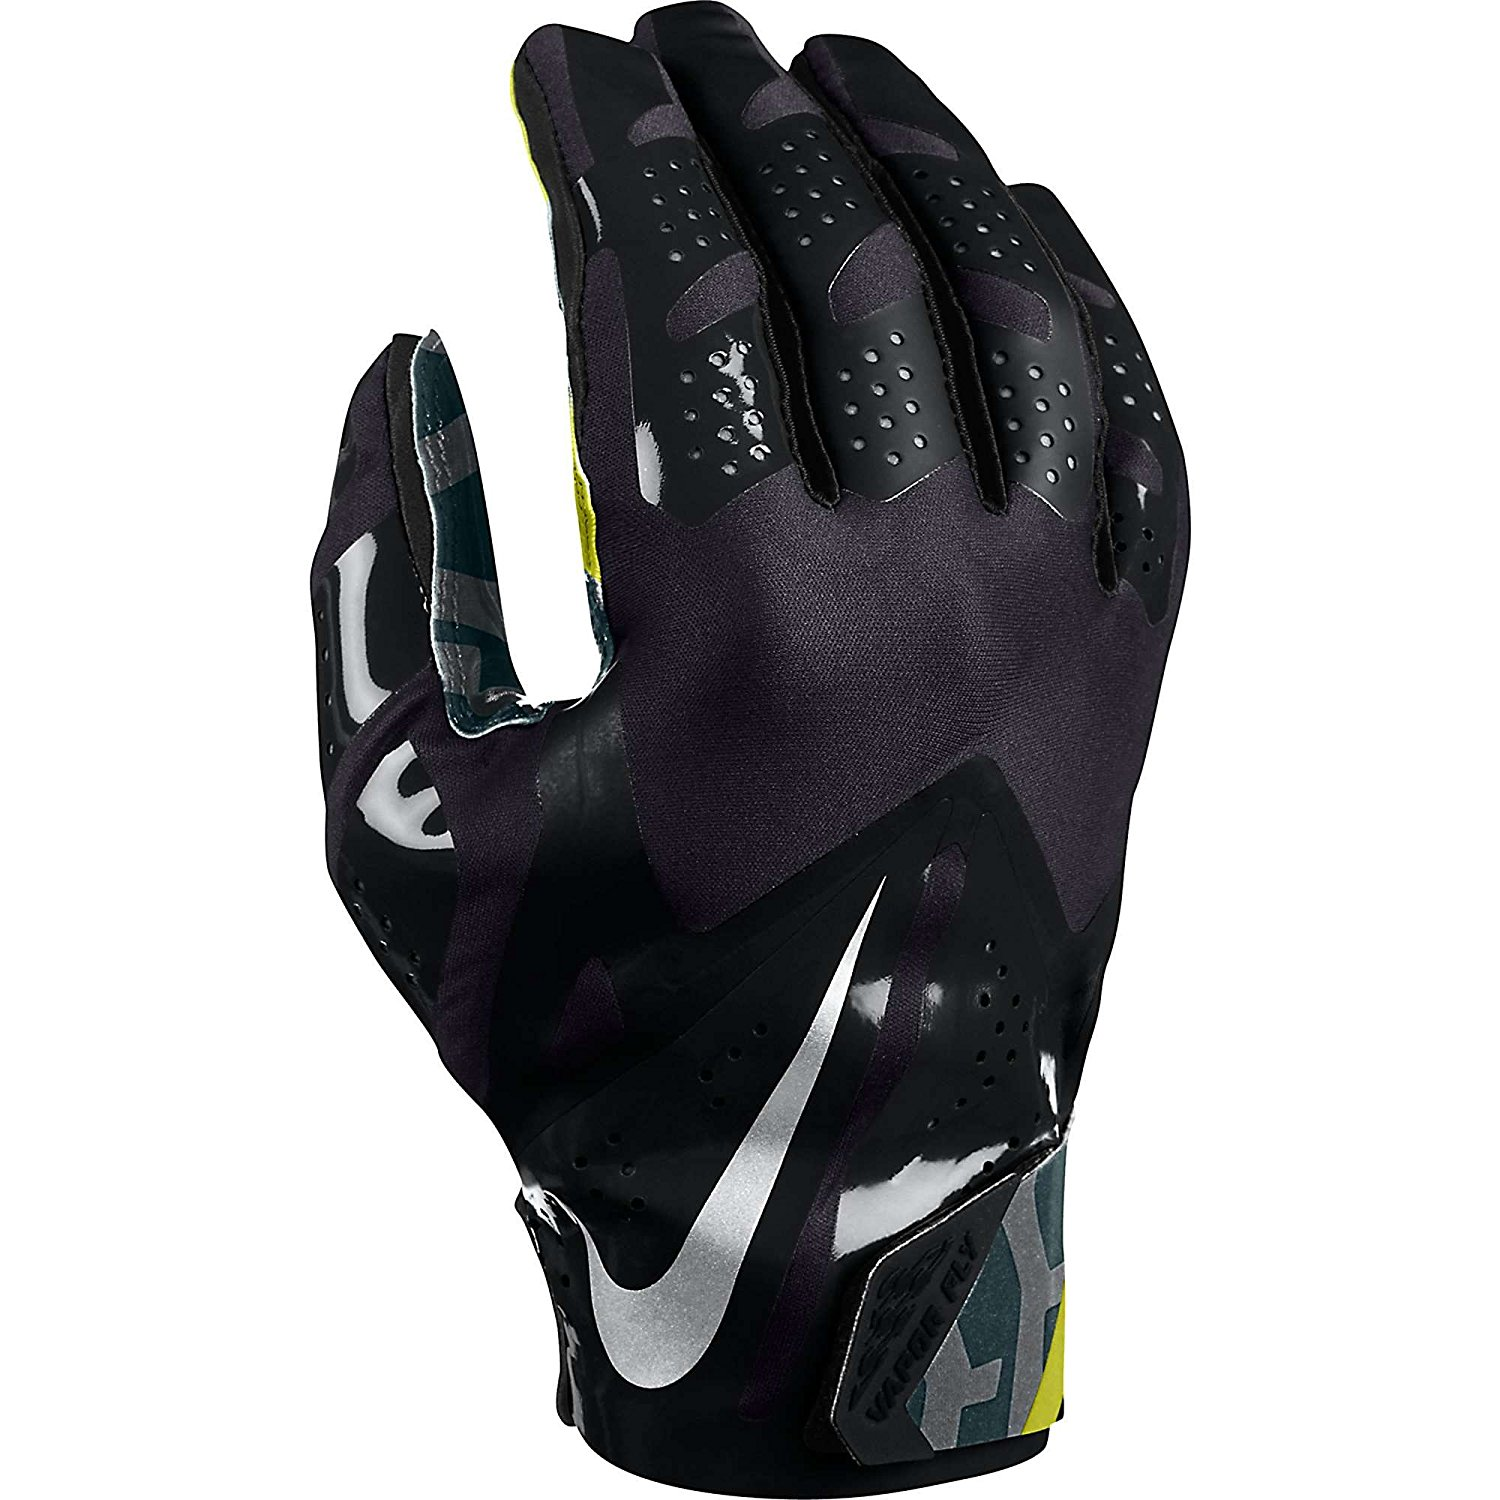 Nike Football Gloves: The Best Football Gloves Reviewed & Tested In 2018 : Best